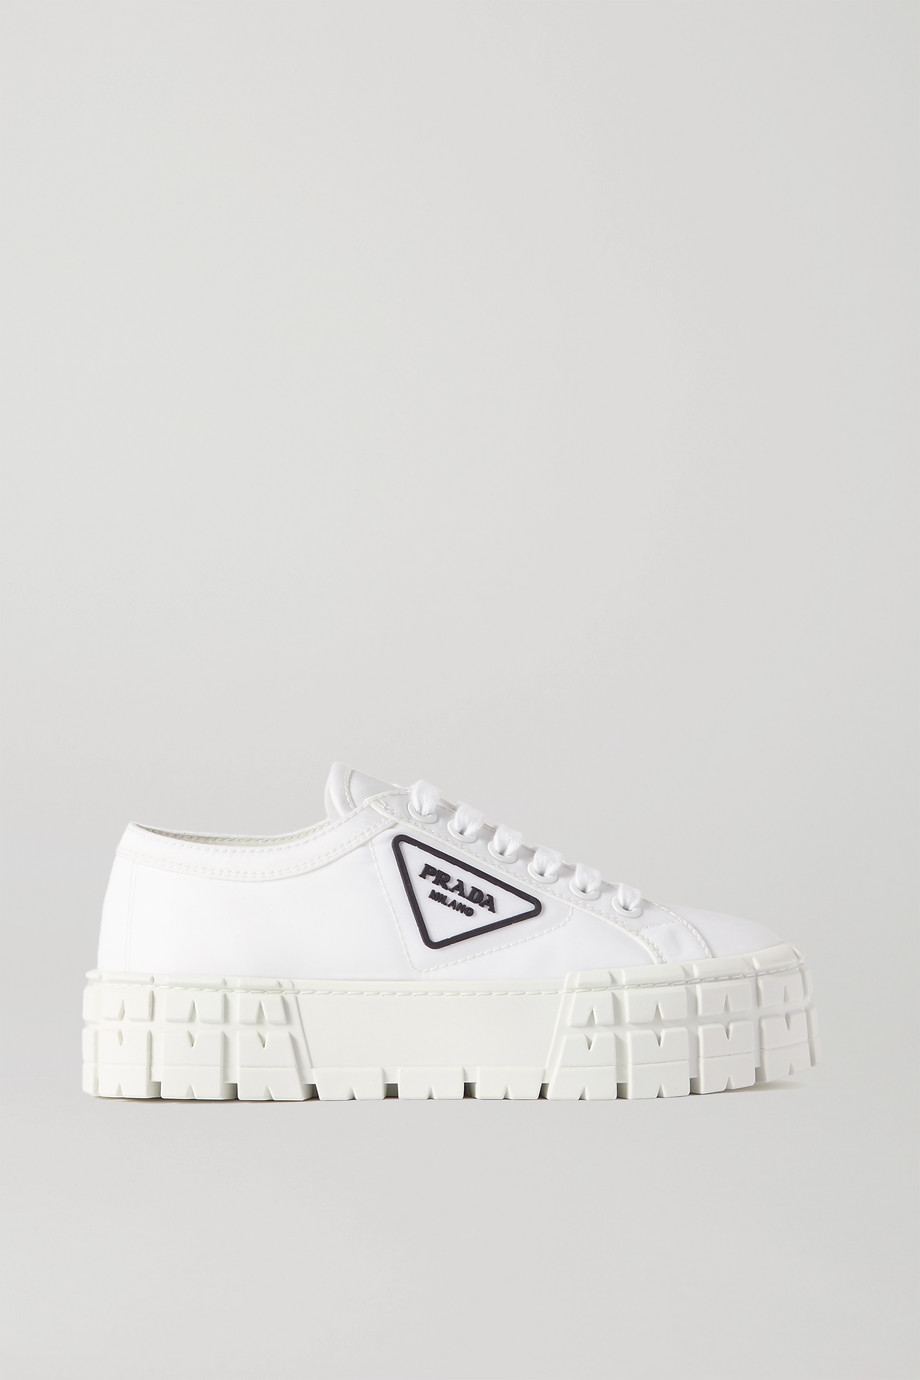 Prada Wheel logo-detailed canvas platform sneakers